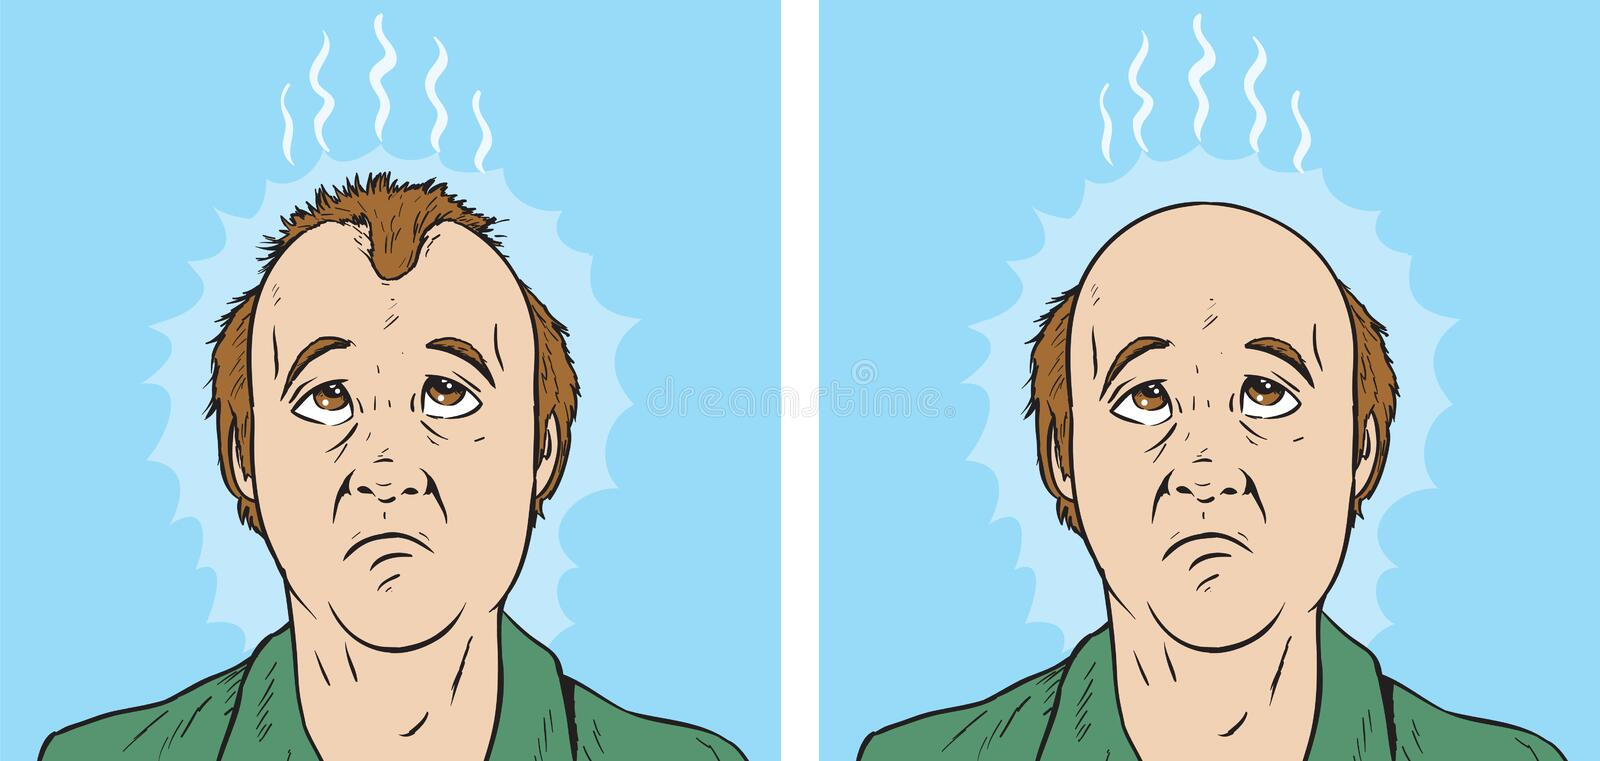 Hair loss cartoon royalty free illustration